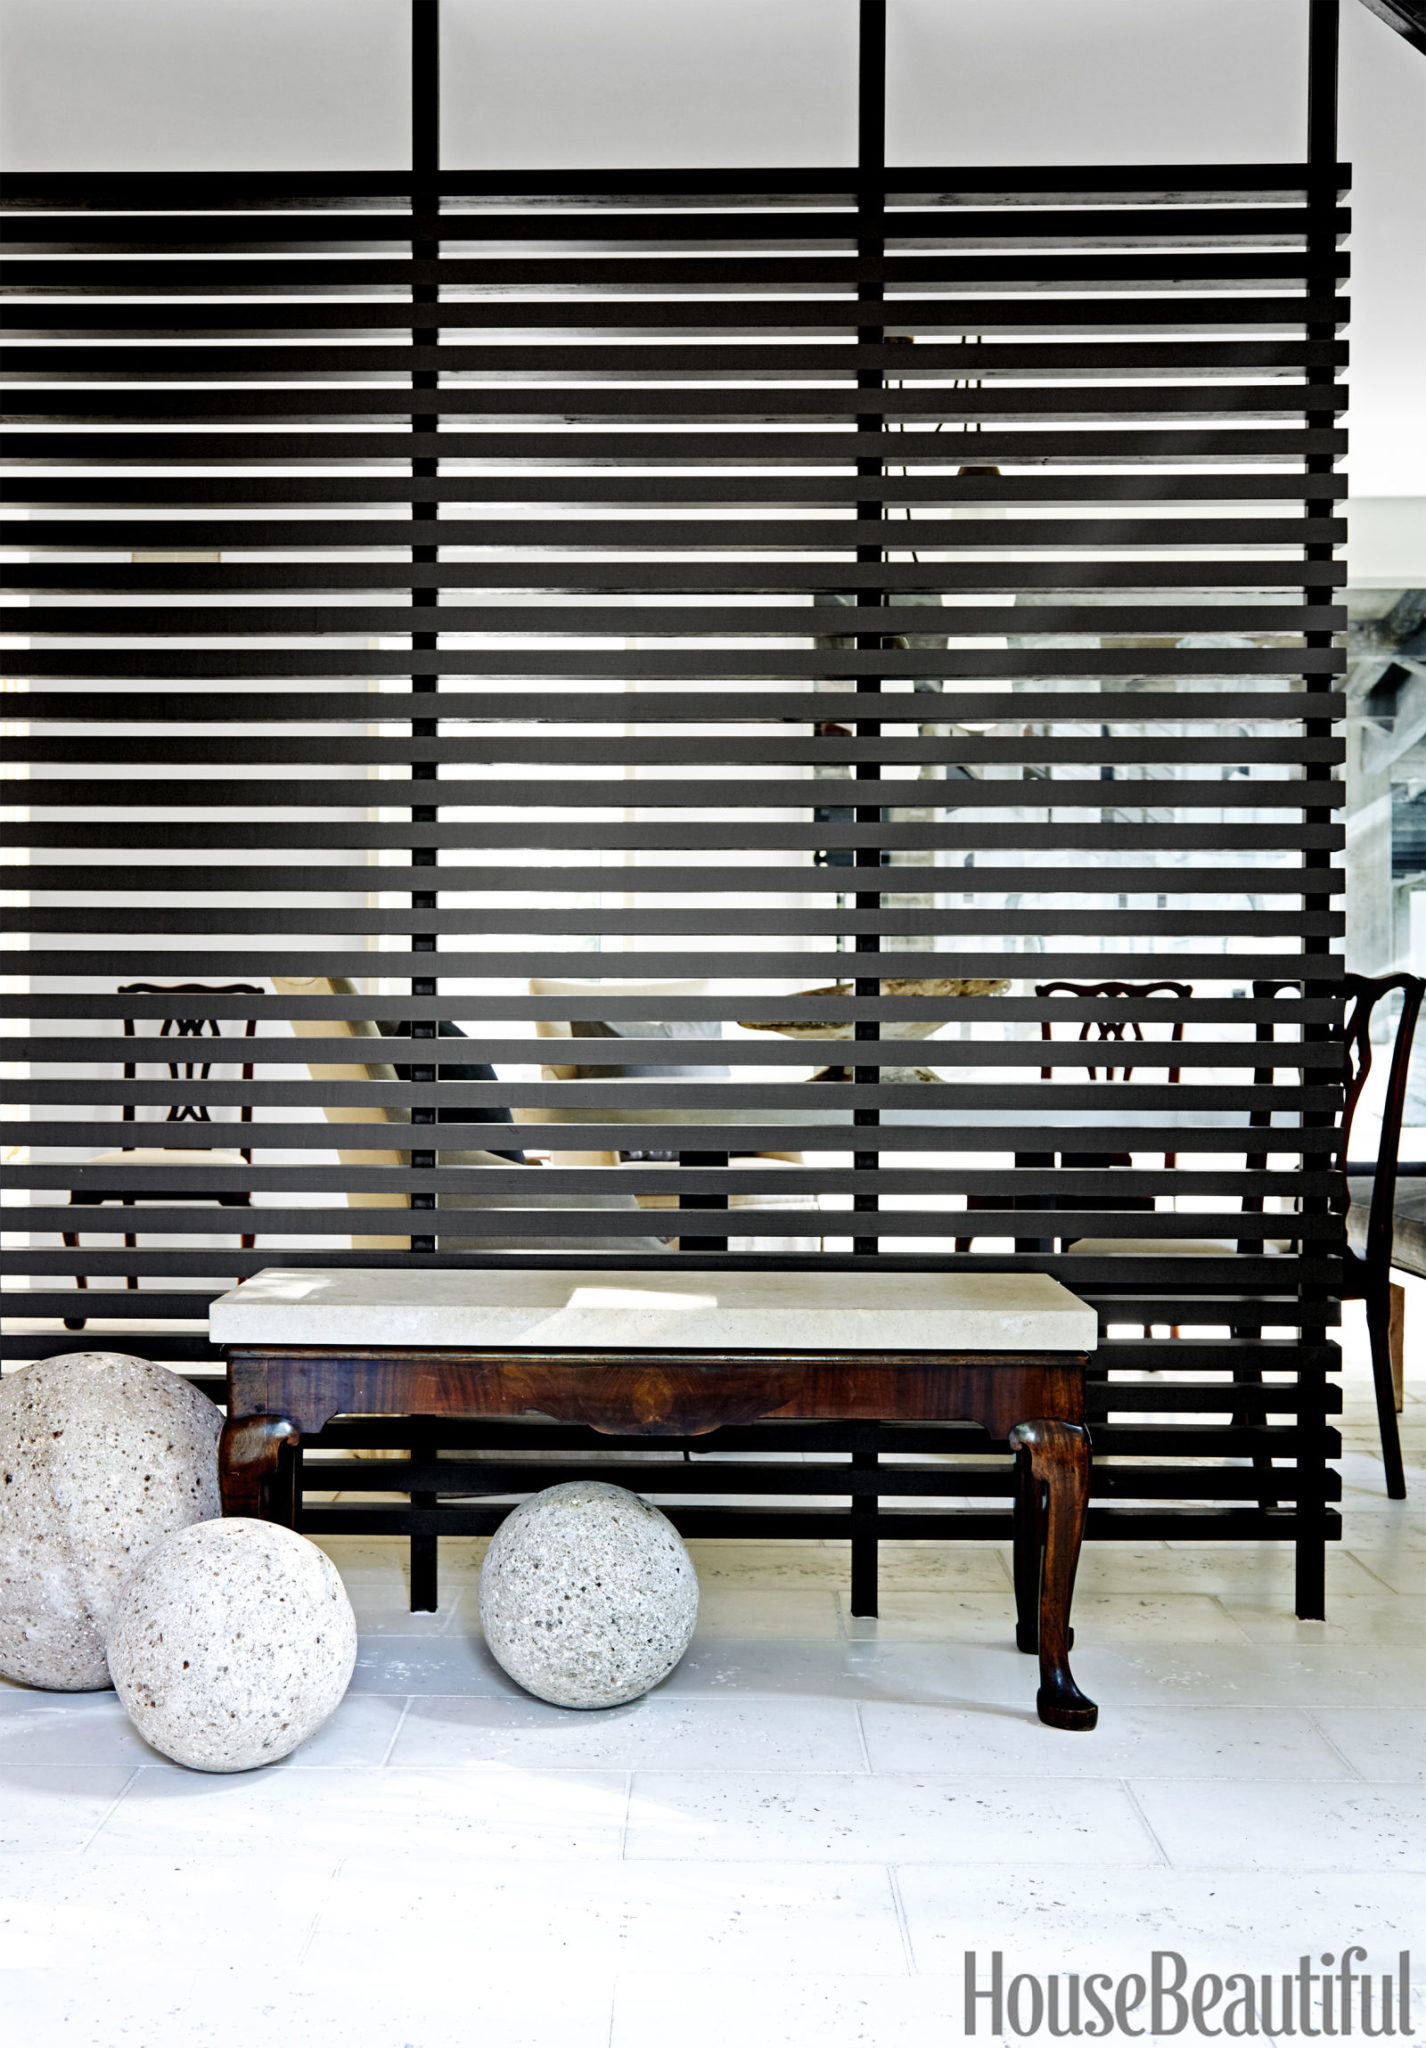 Monochrome entryway is a great example of dynamic simplicity